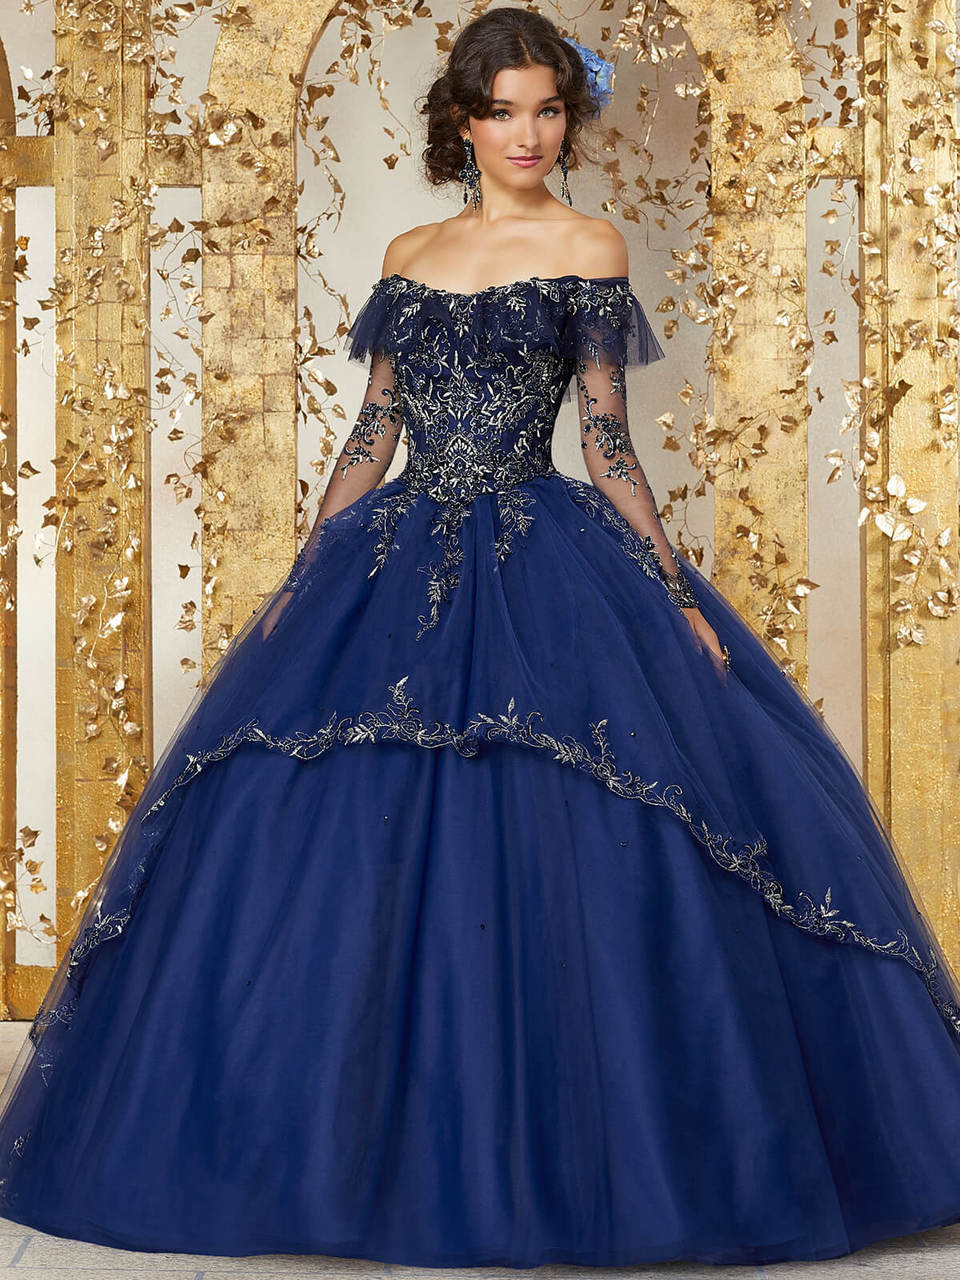 0aee81b6143 off the shoulder with long sleeves vizcaya quinceanera ball gown 89235